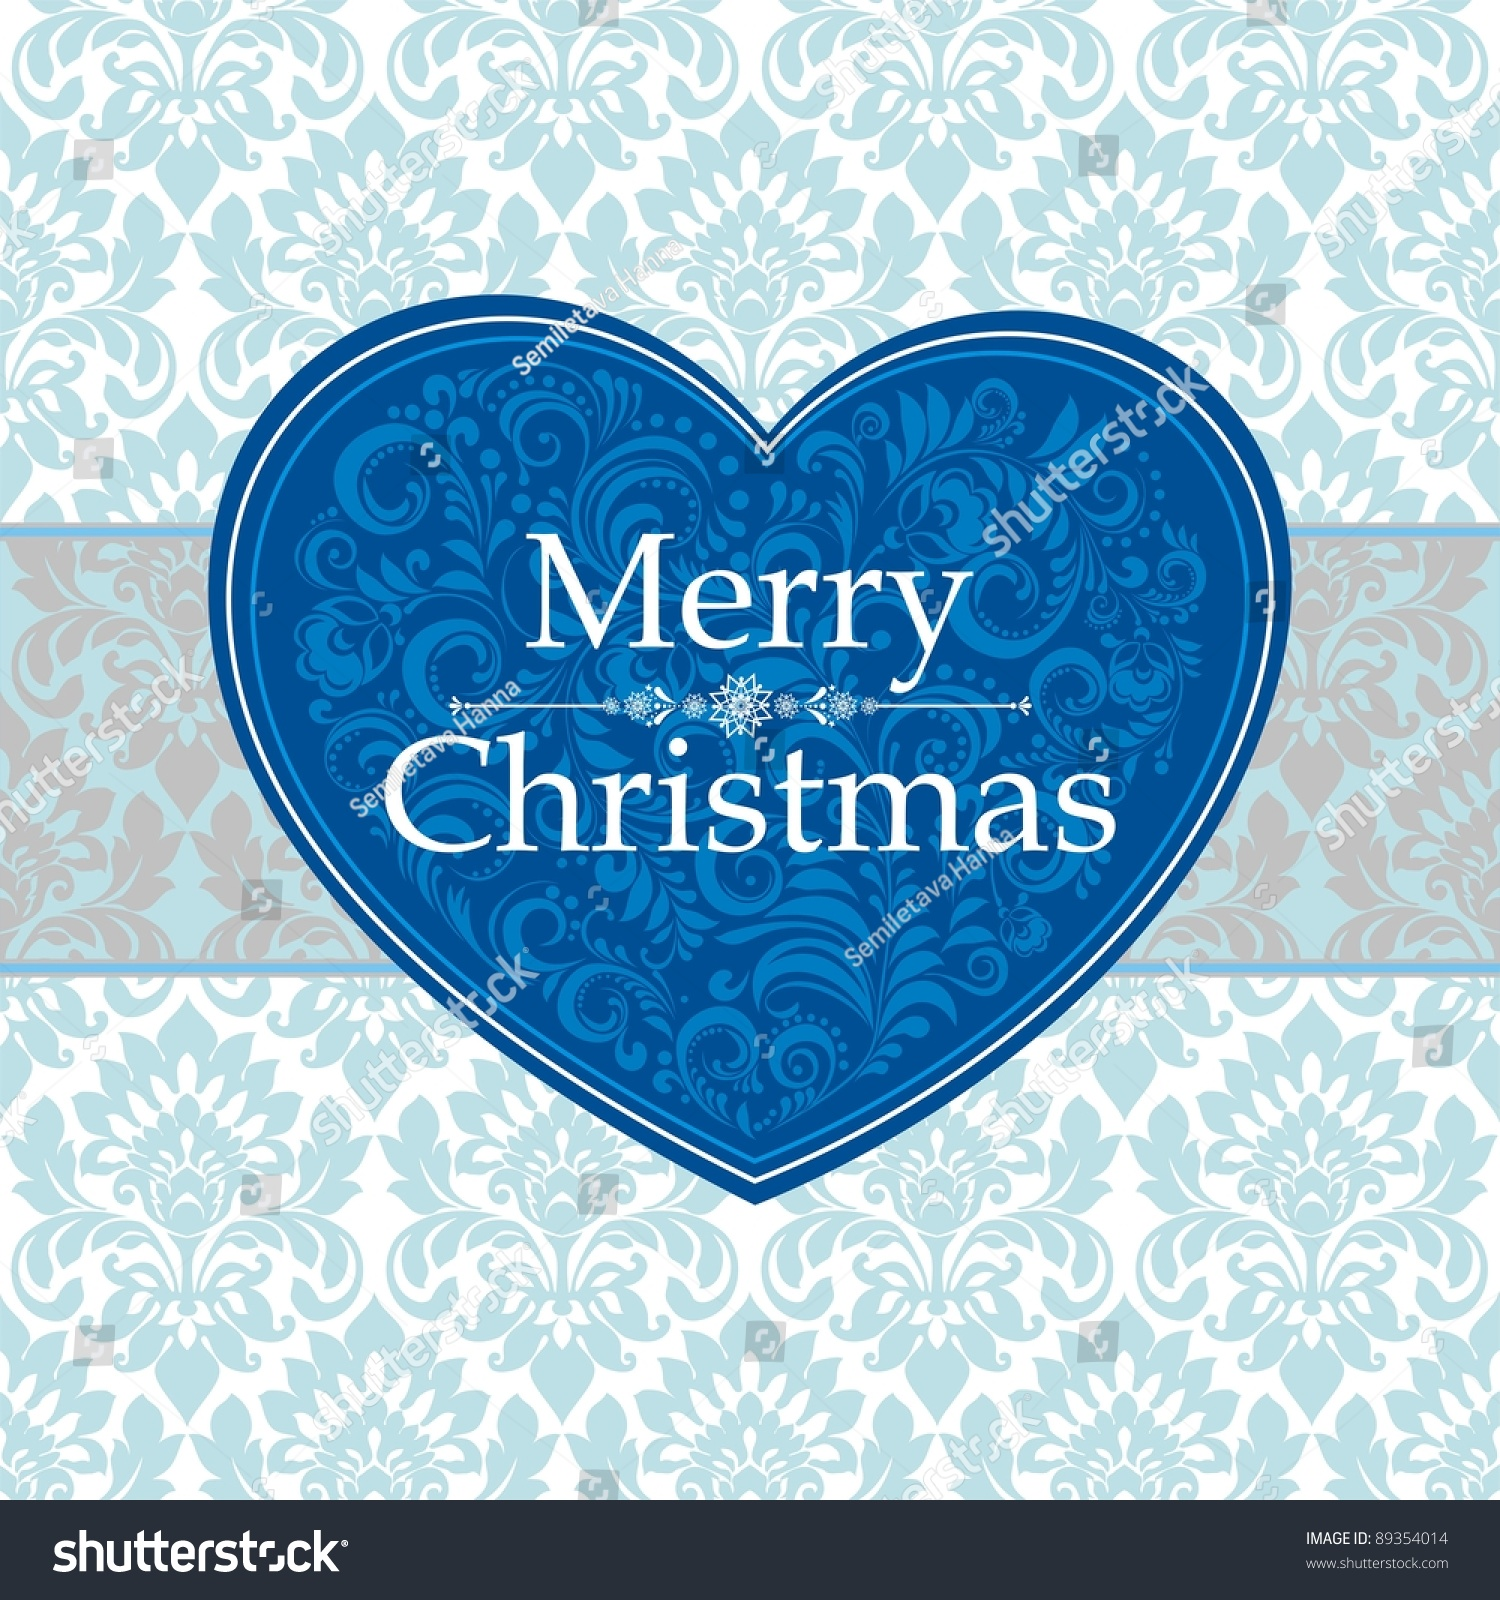 Vintage merry christmas card blue heart with flower